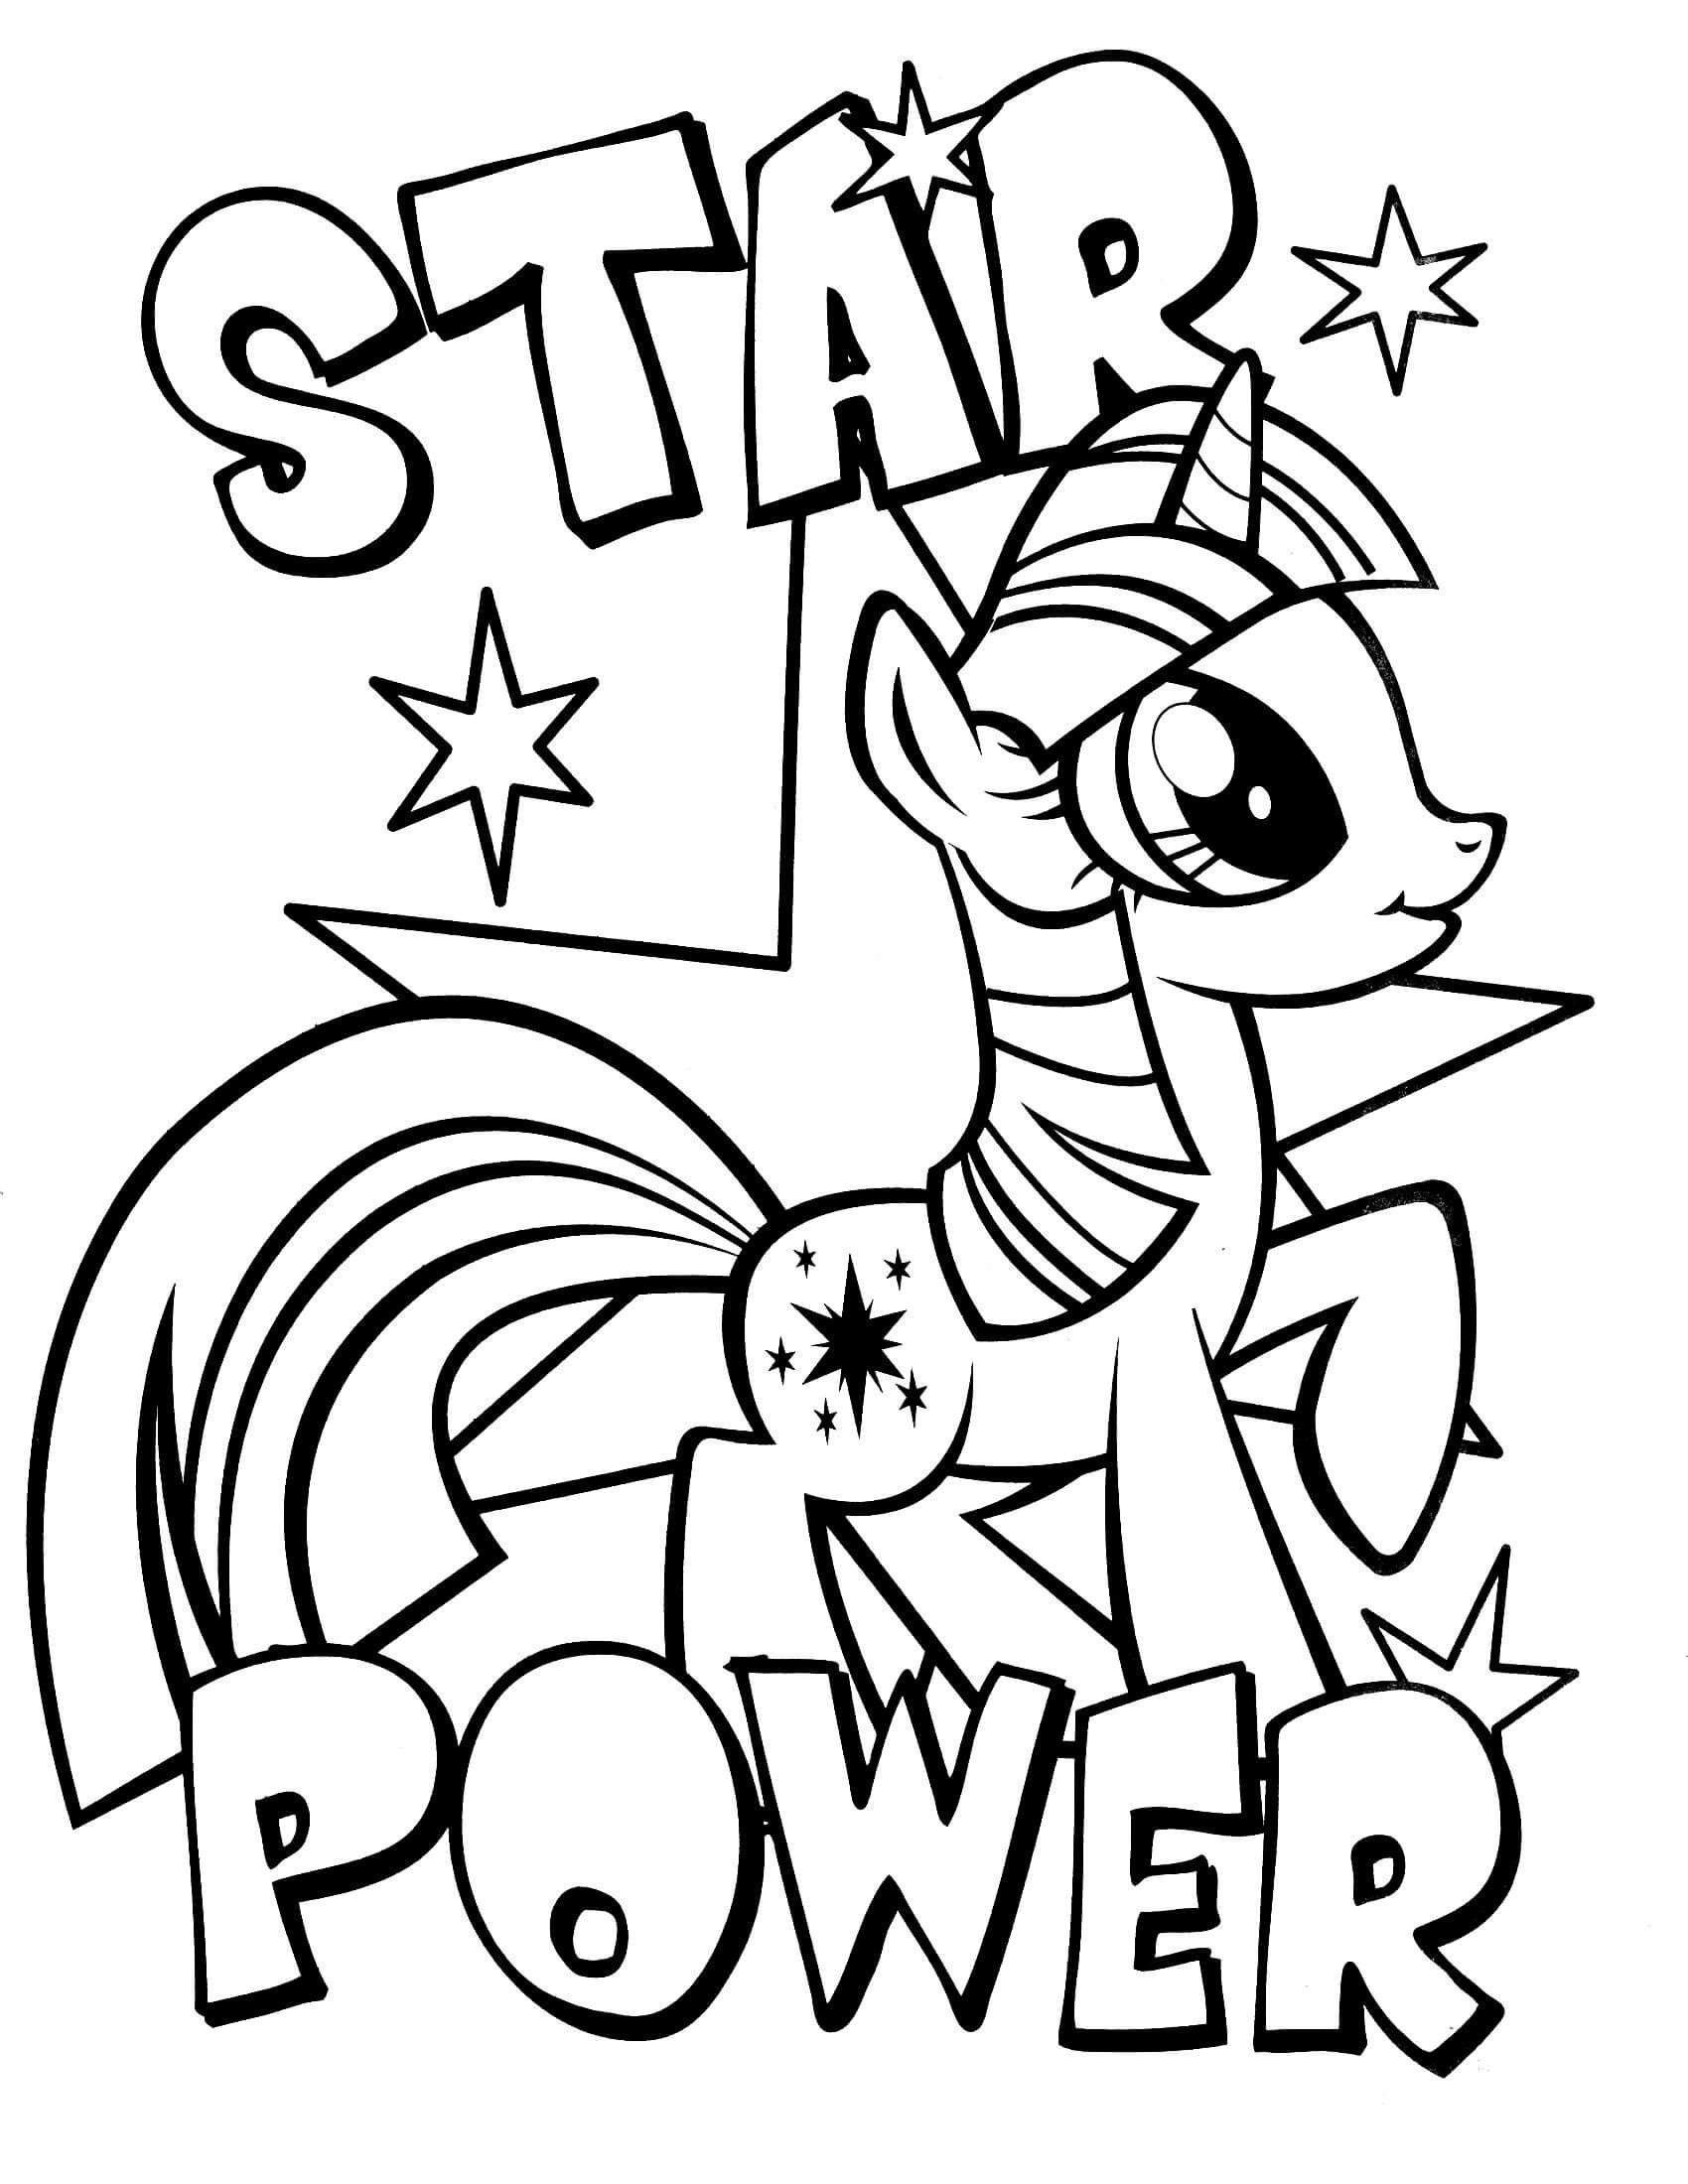 Coloring Games Mlp Refrence My Little Coloring Pages Valid Little Pony 3 Bravica Fresh Unicorn Coloring Pages My Little Pony Printable My Little Pony Coloring